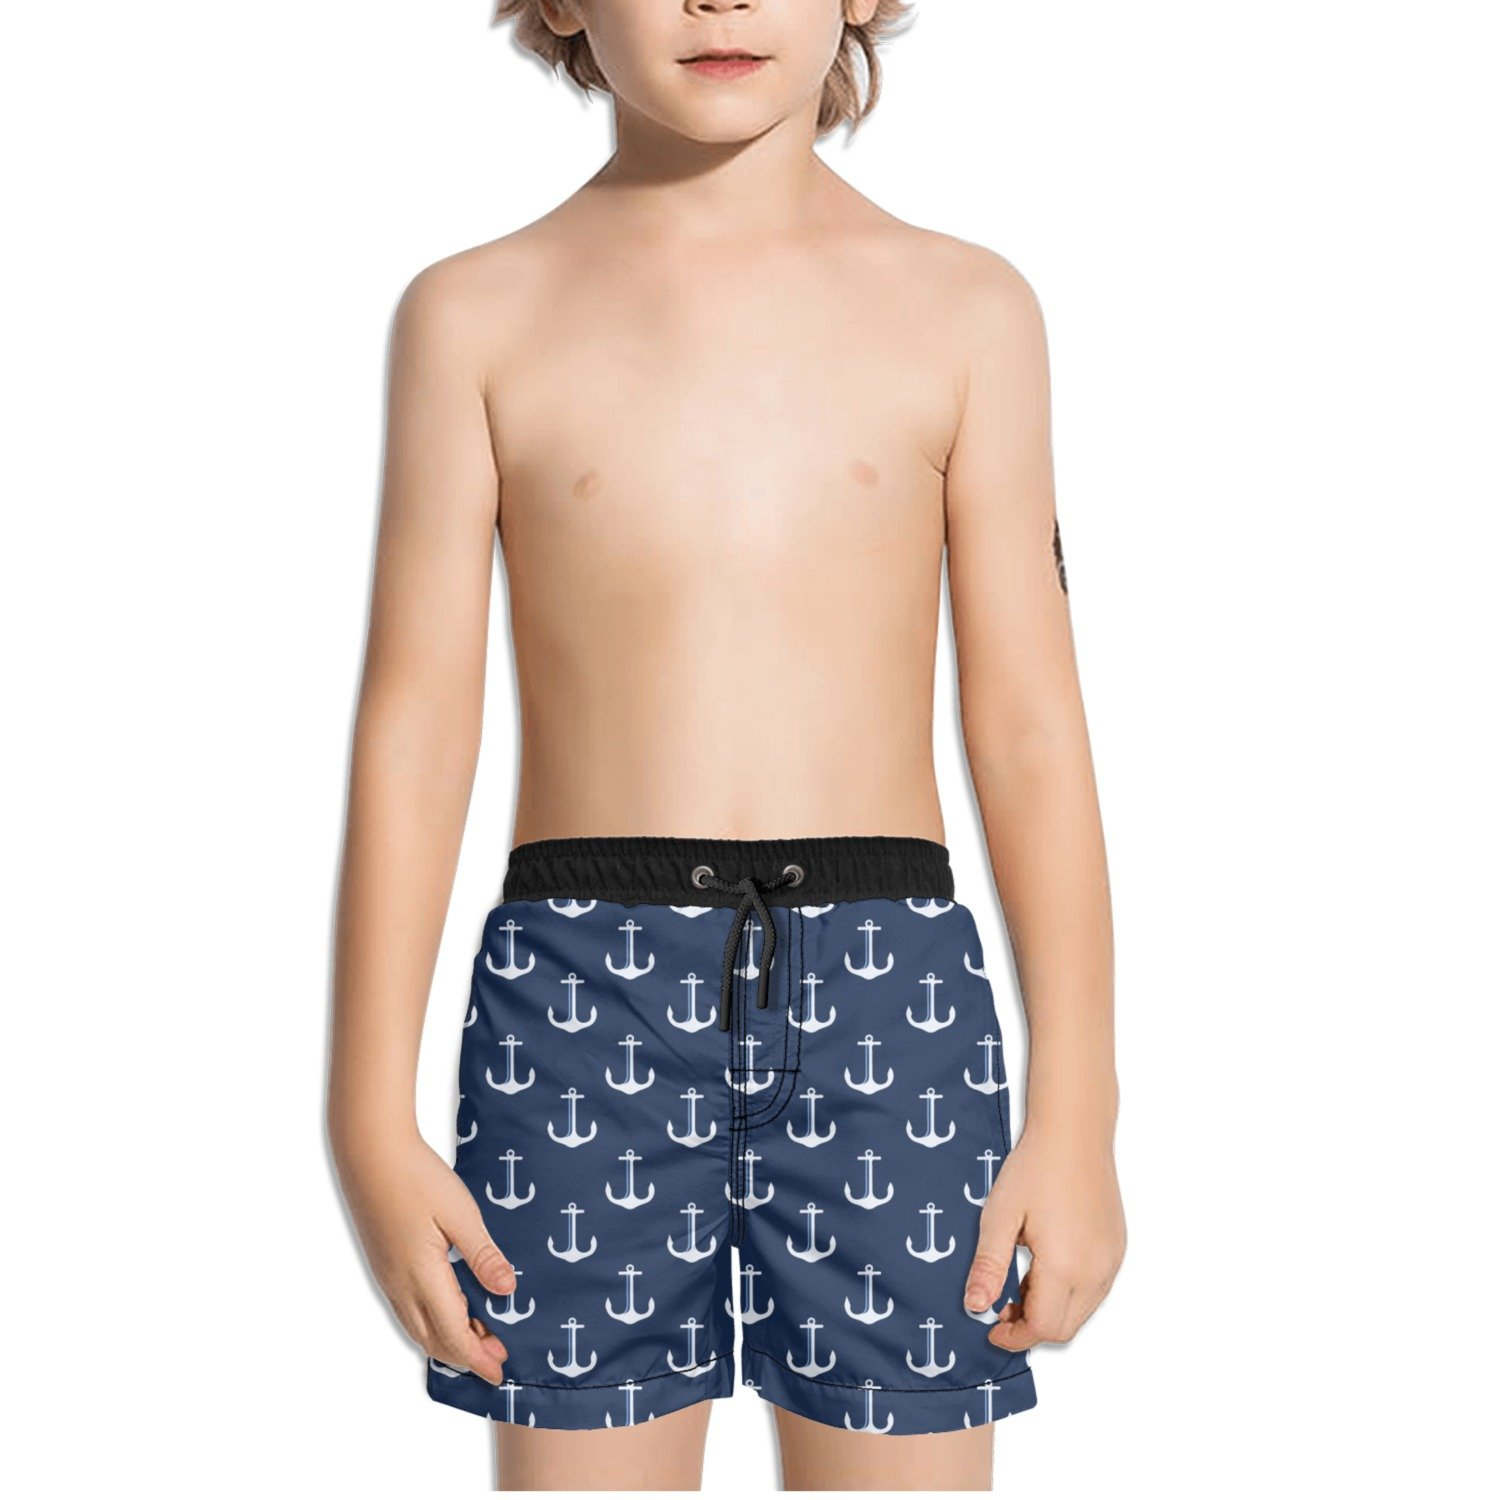 Ouxioaz Boys Swim Trunk Seamless Anchor Pattern Beach Board Shorts